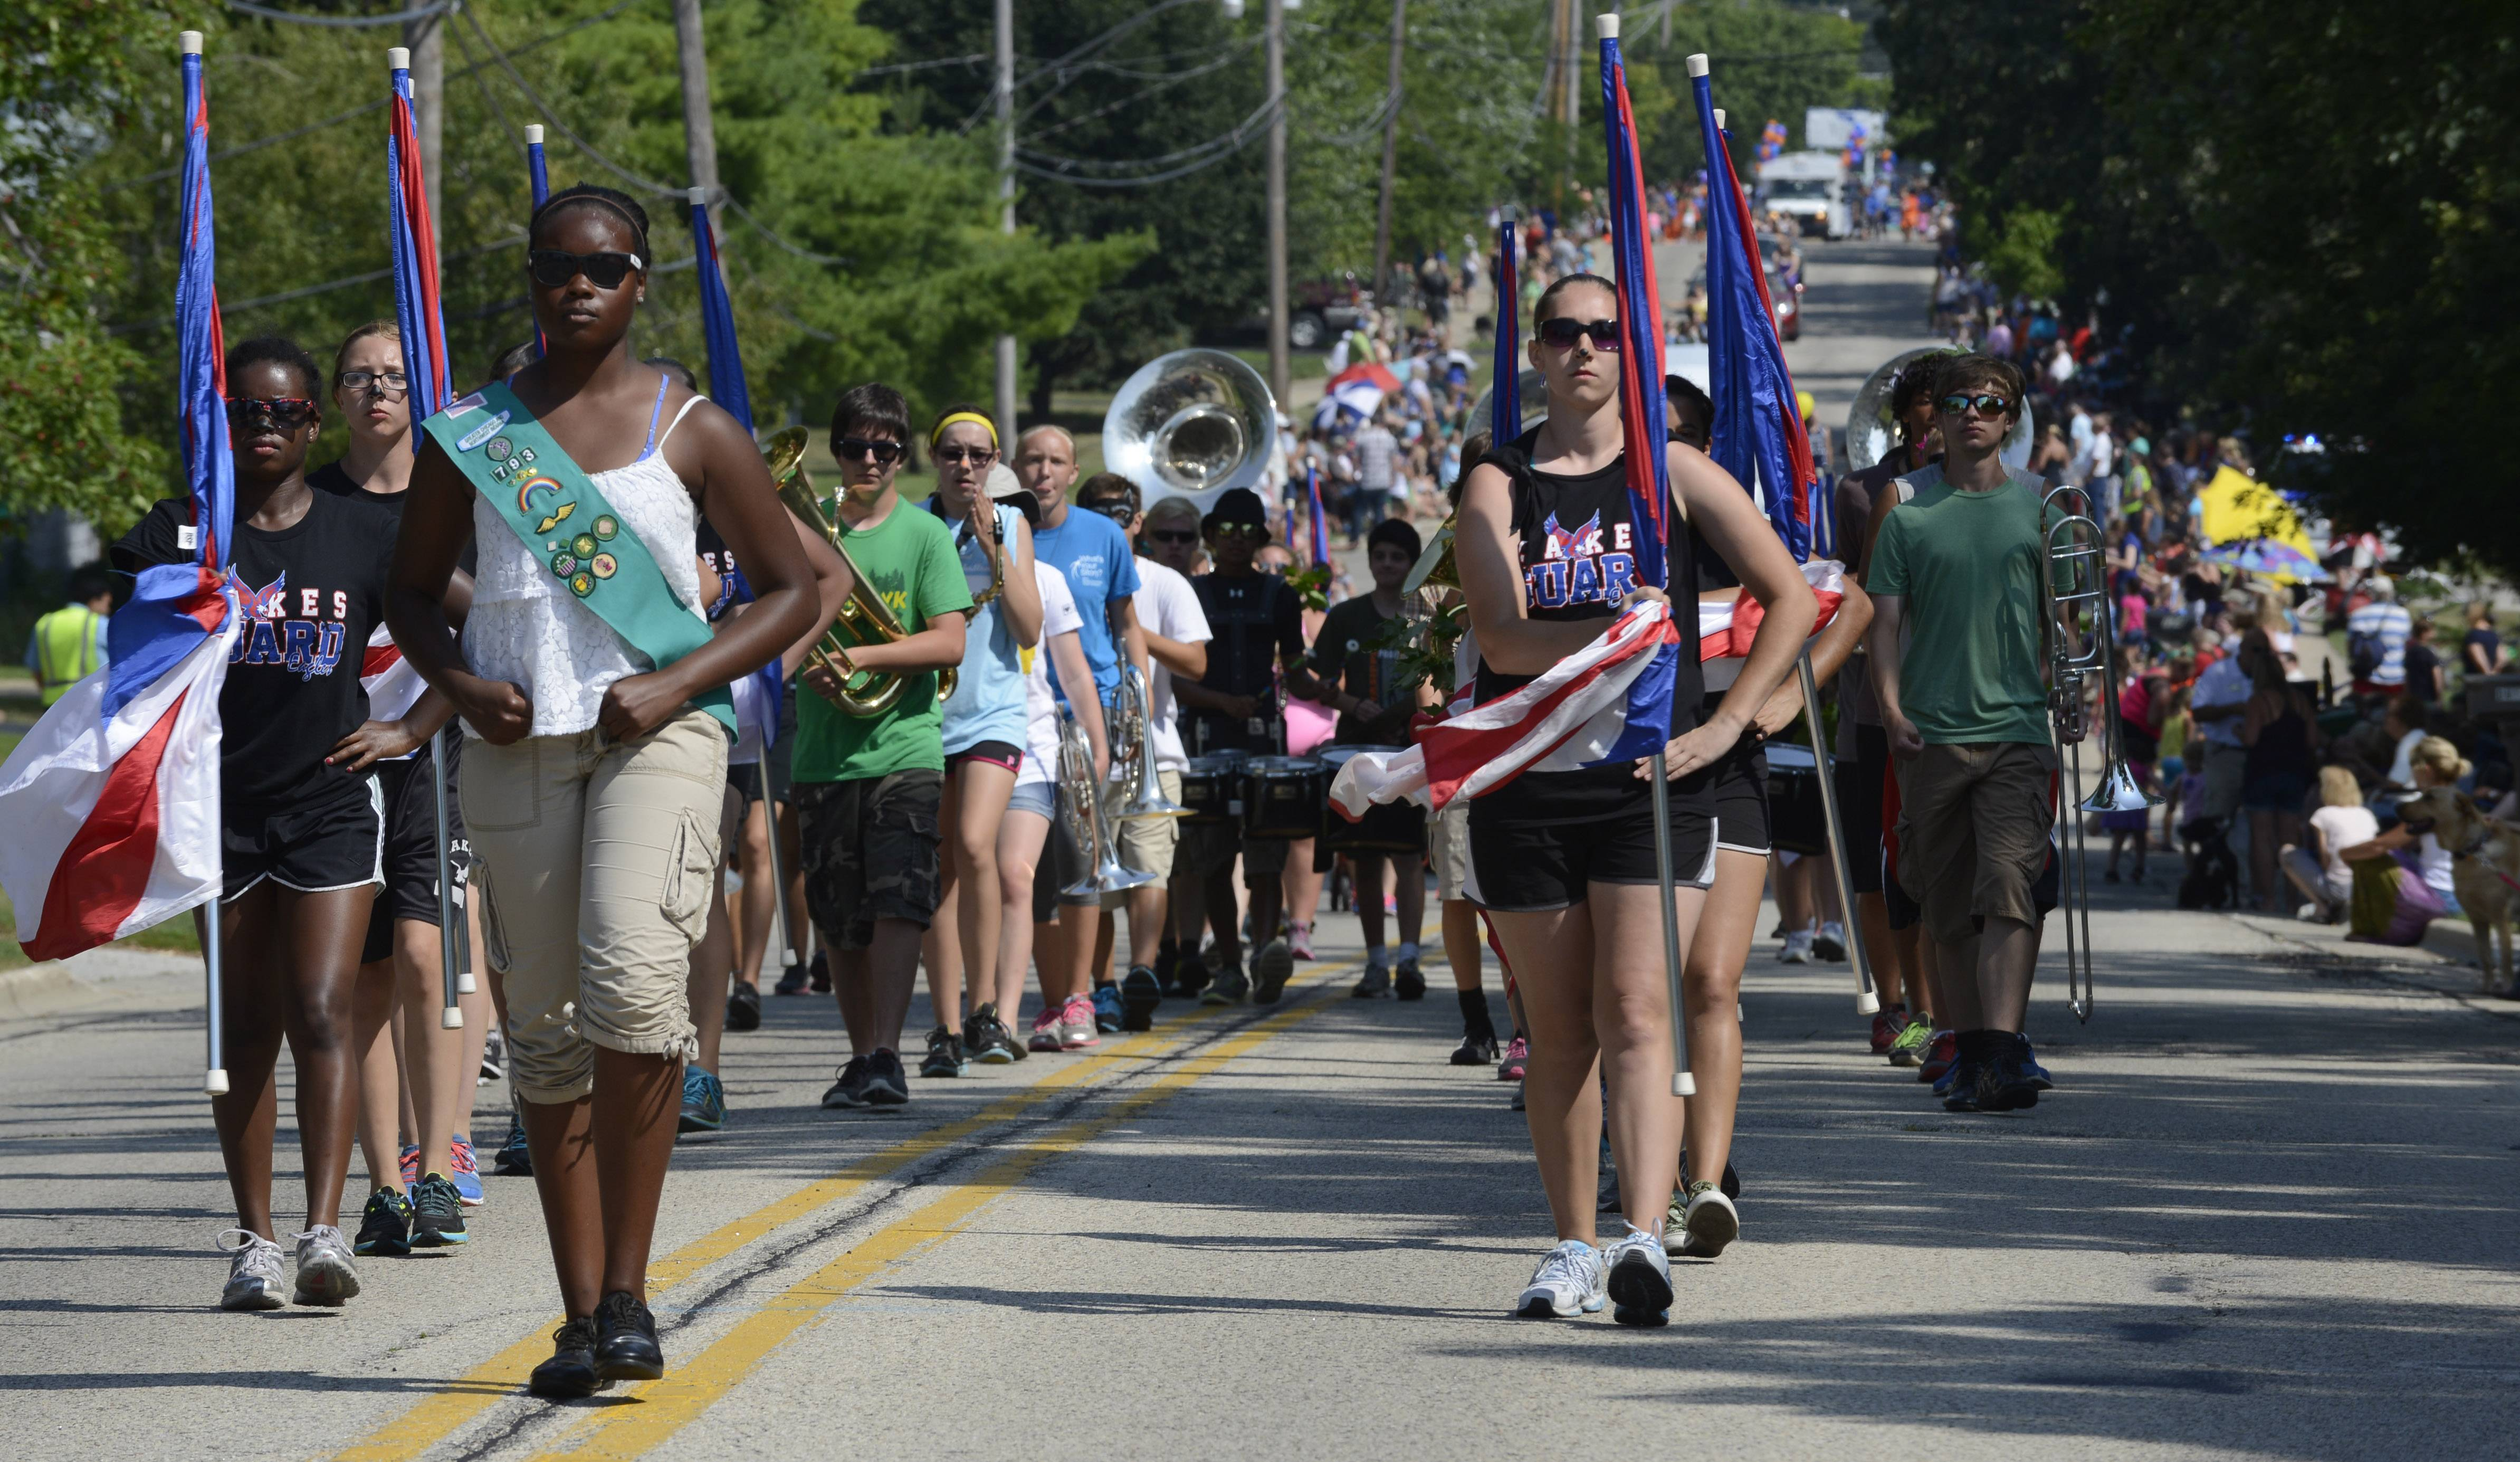 The Lakes High School drill team and band matches Saturday during the Lindenfest Parade in Lindenhurst.